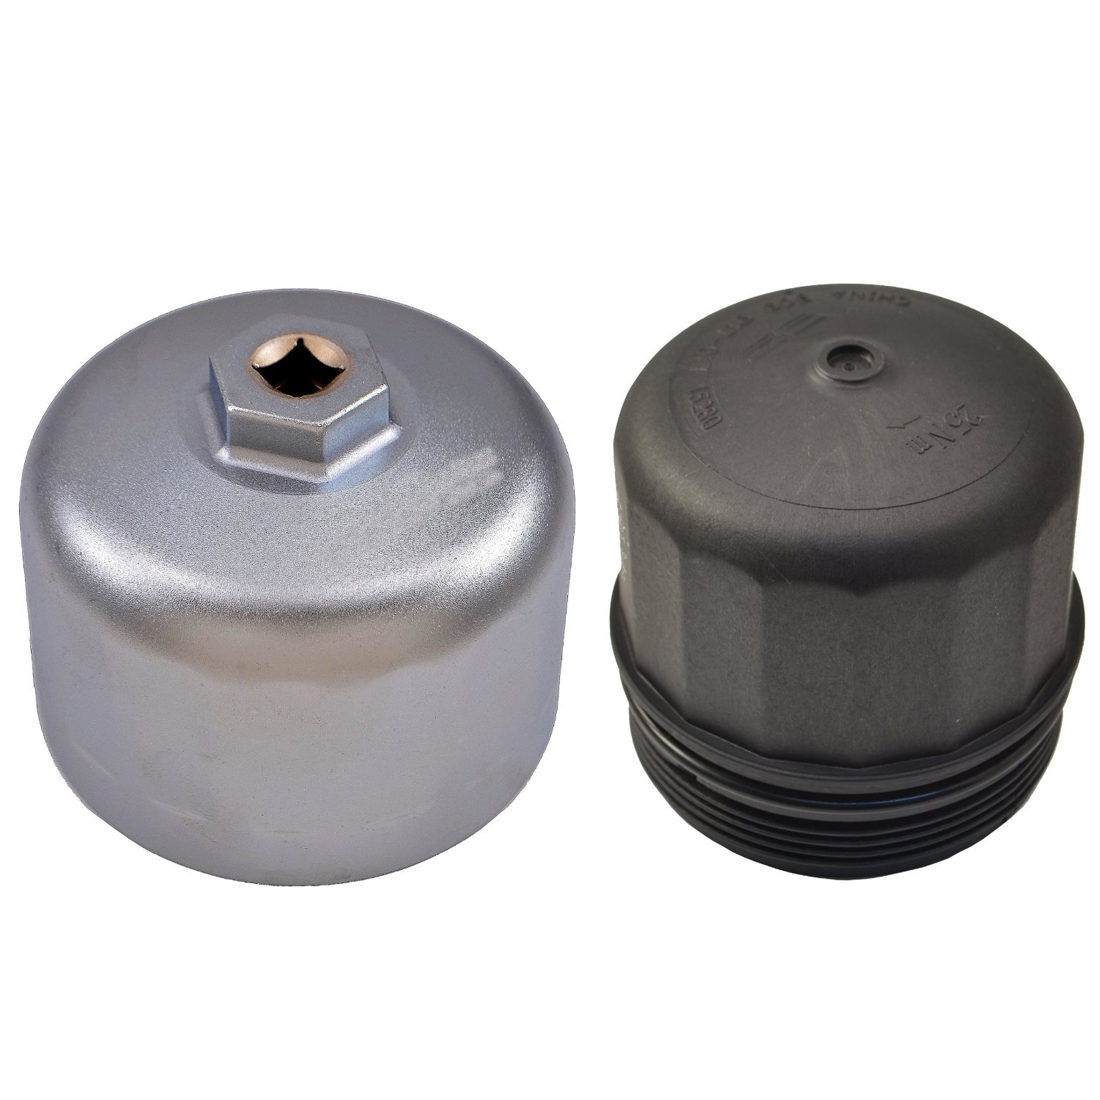 Oil Filter Wrench 86mm Cartridge Style Housing Cap Remover Tool For BMW Volvo #B 7437550736722 ...